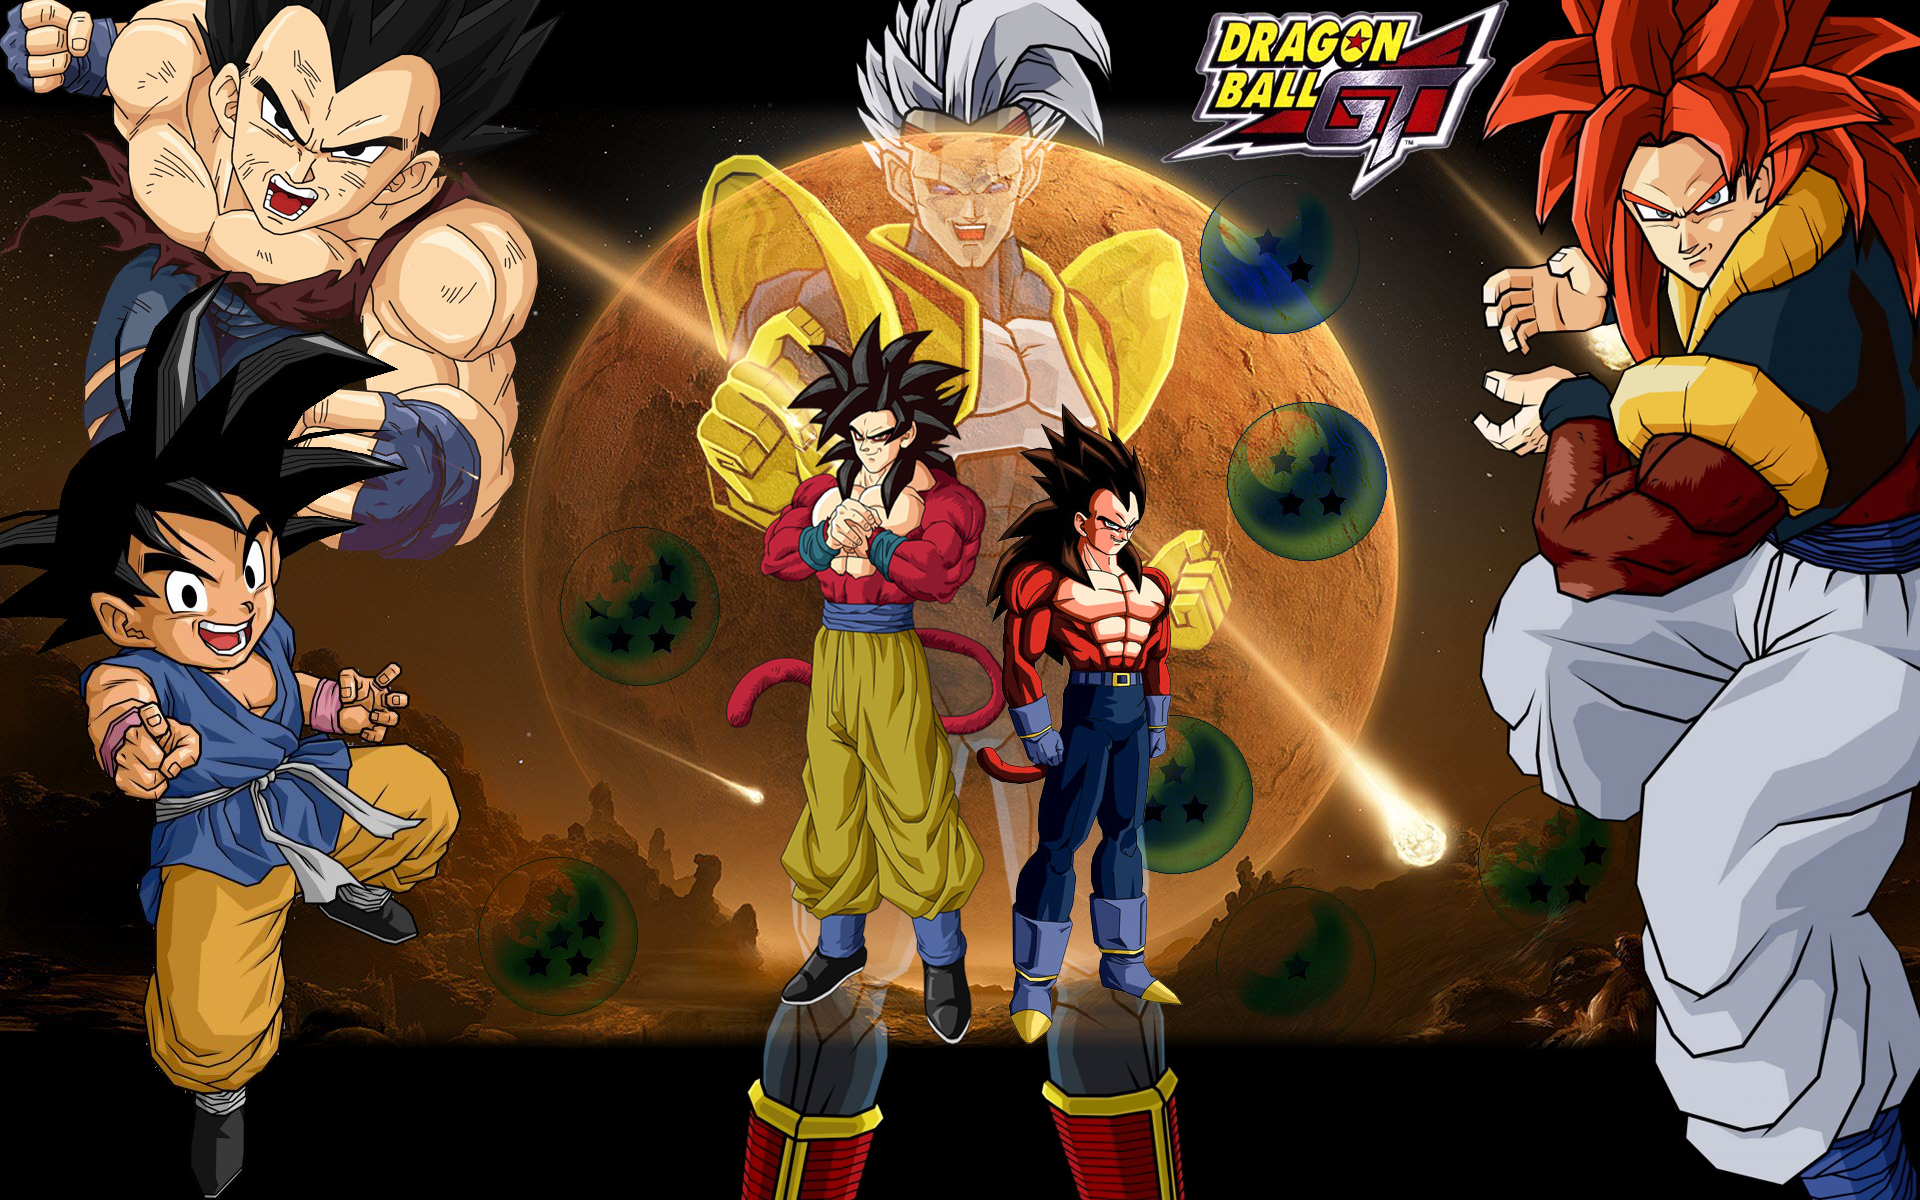 Dragon Ball GT Backgrounds, Compatible - PC, Mobile, Gadgets  1920x1200 px